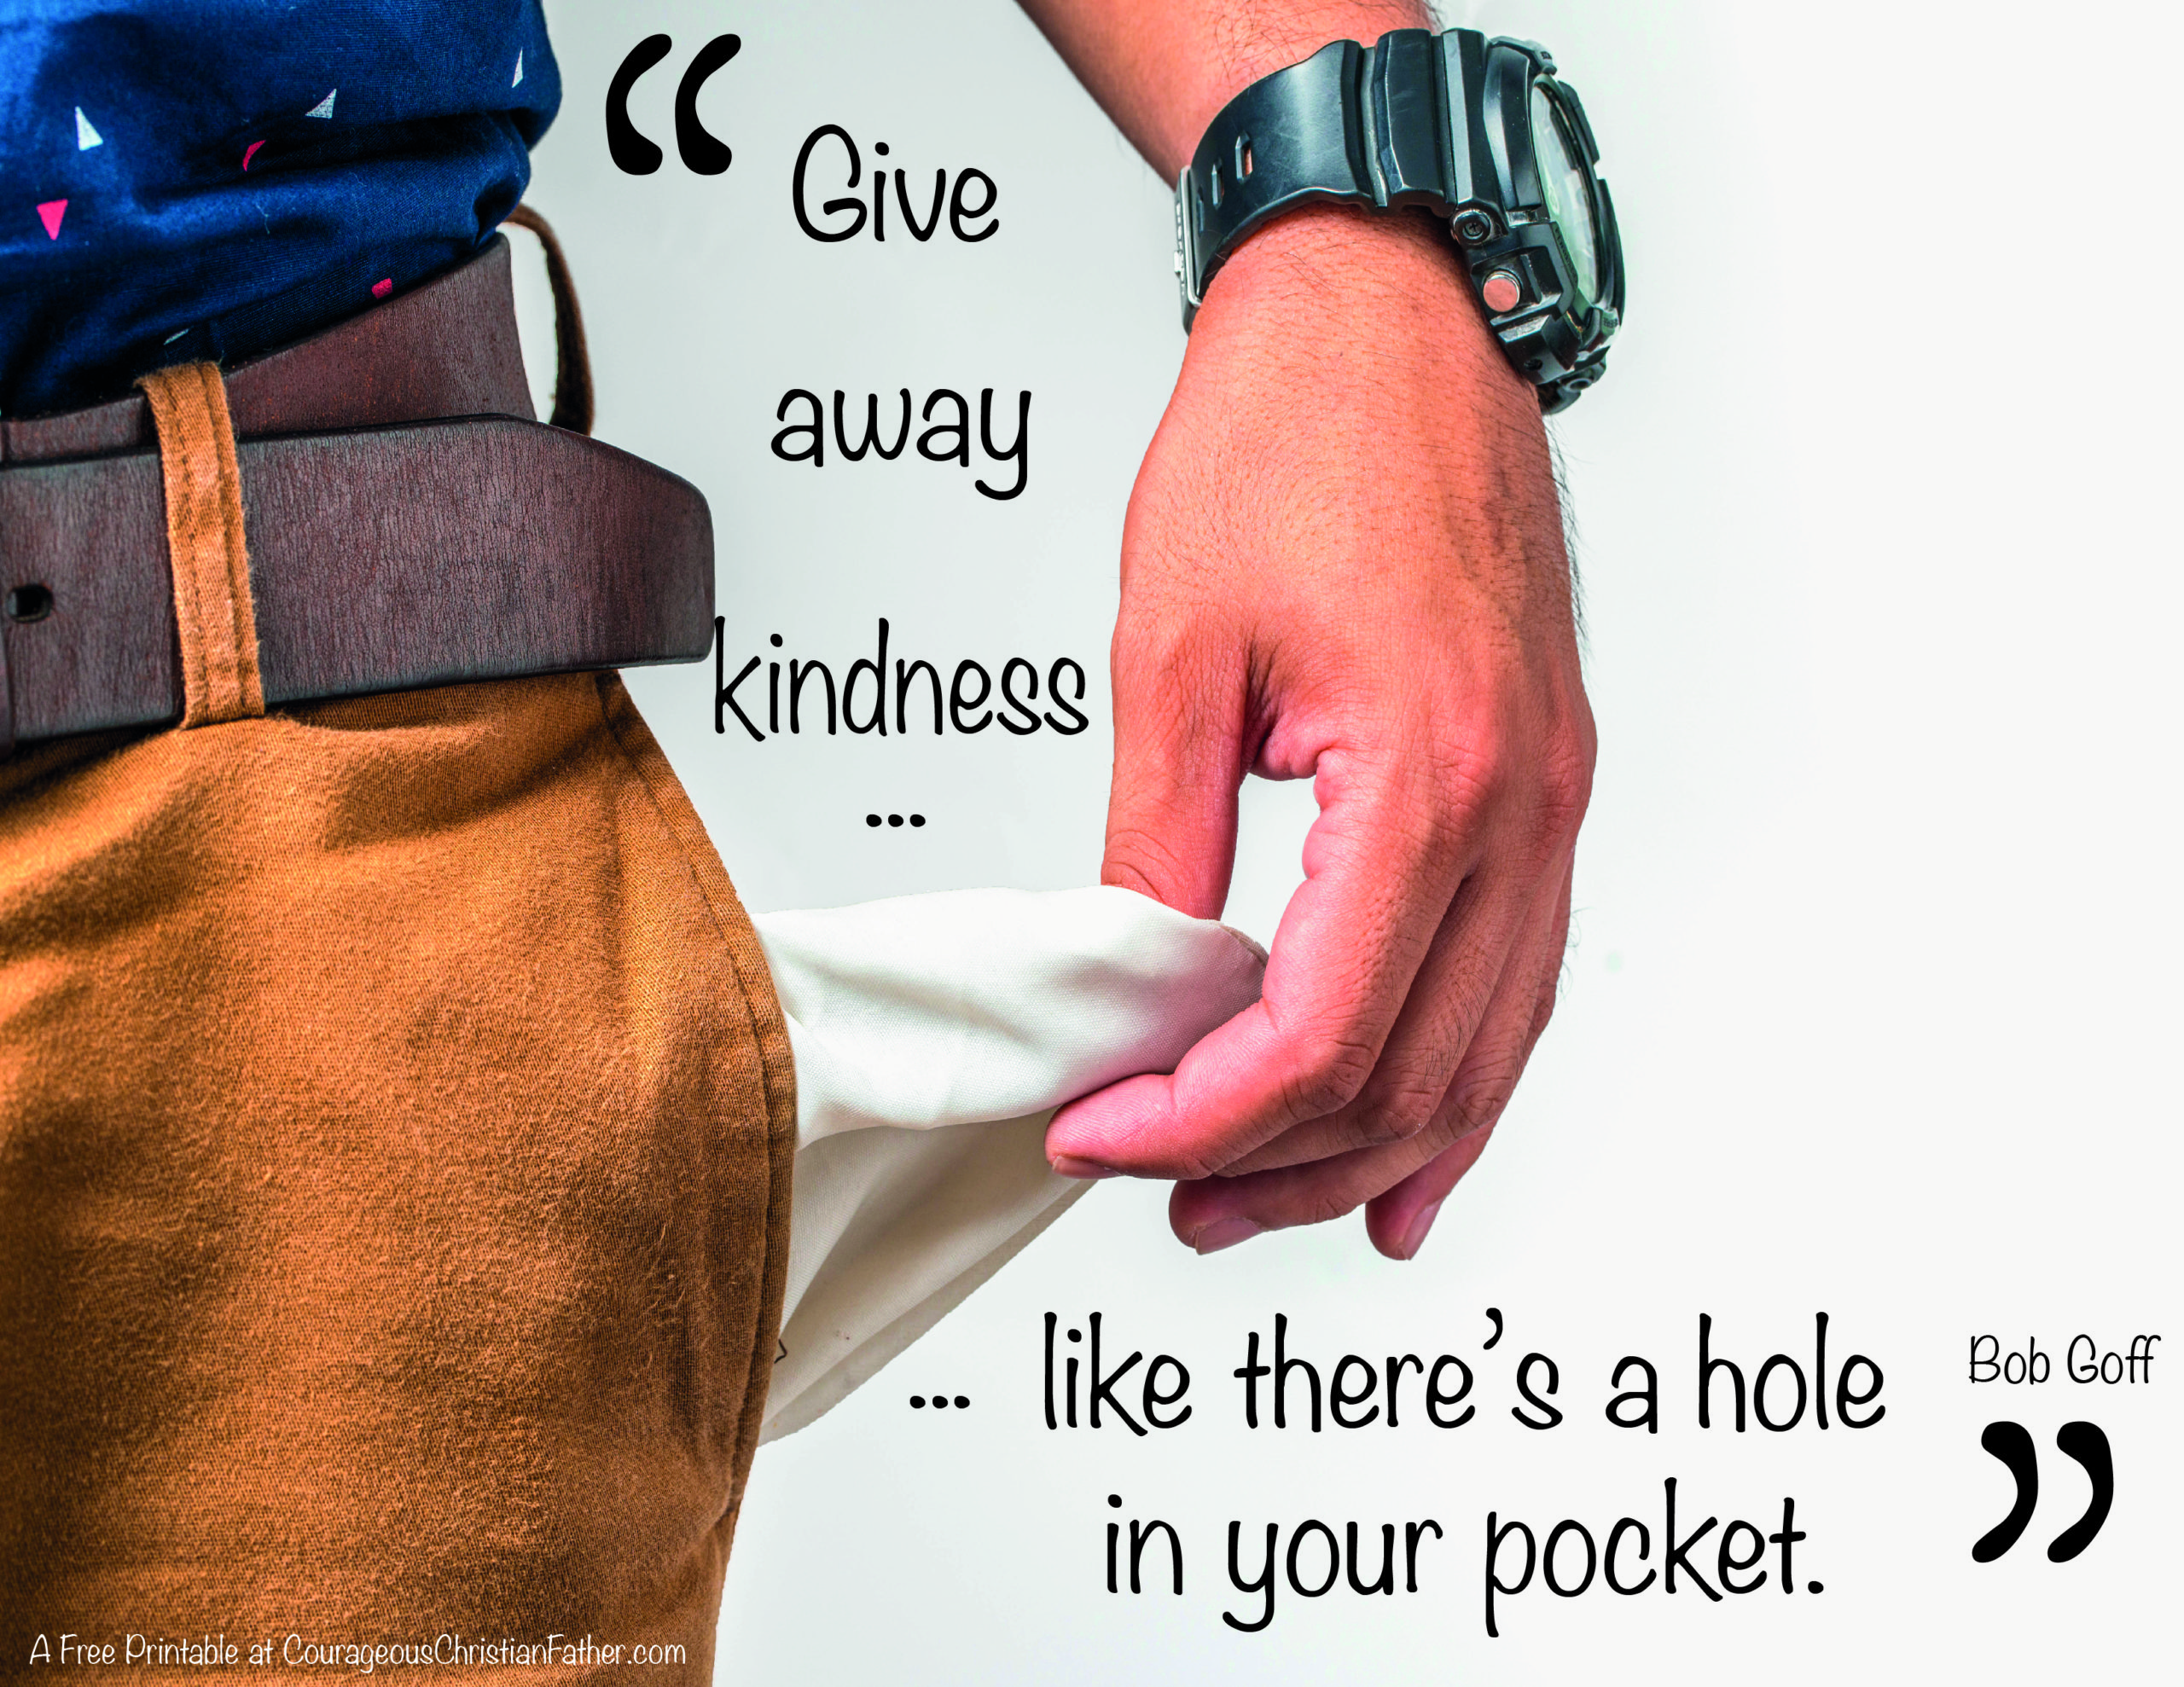 Give away kindness like there's a hole in your pocket ​